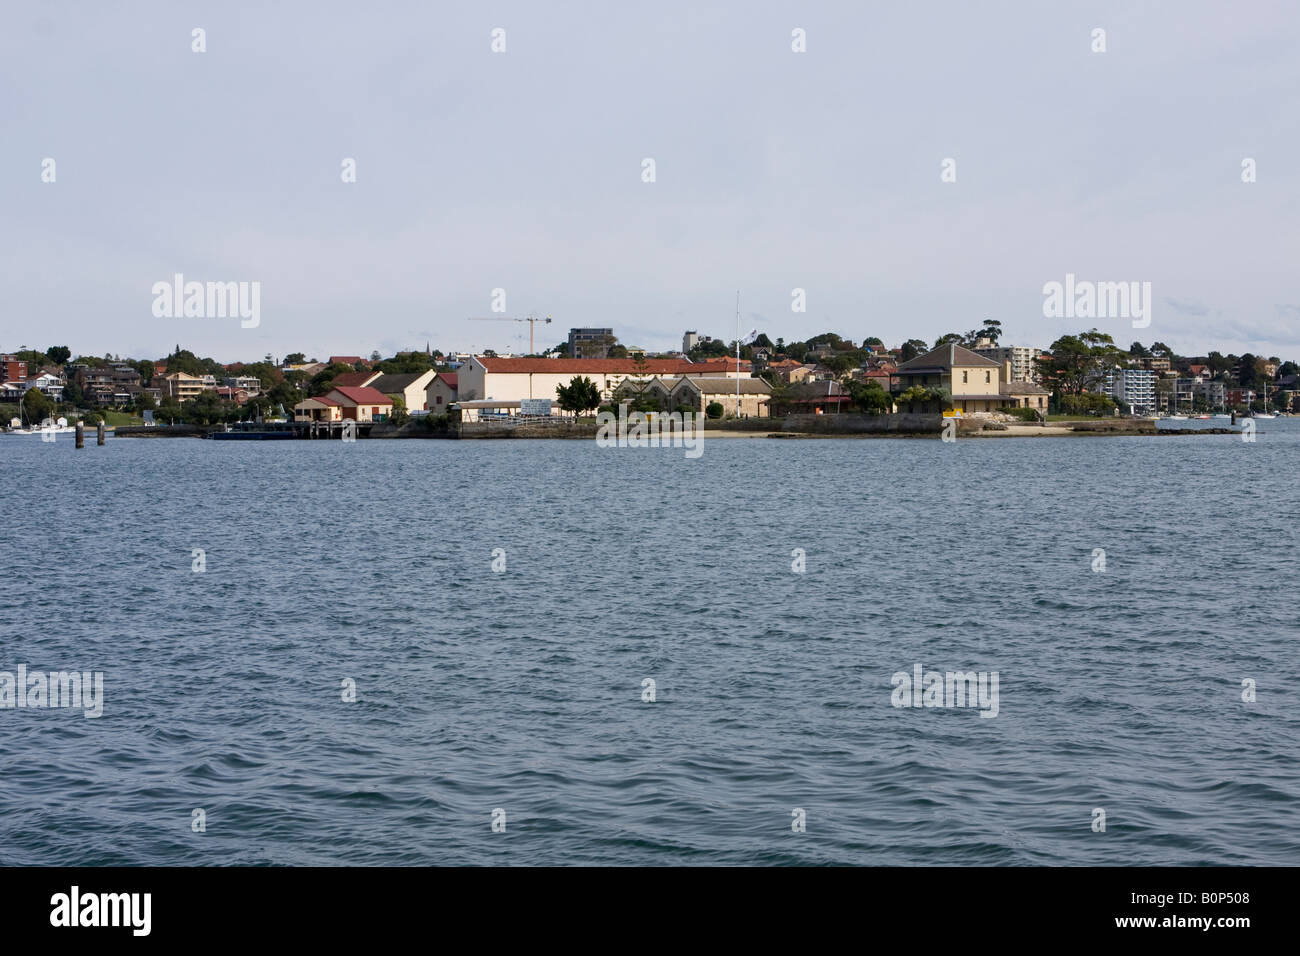 Spectacle Island in Sydney Harbour. - Stock Image